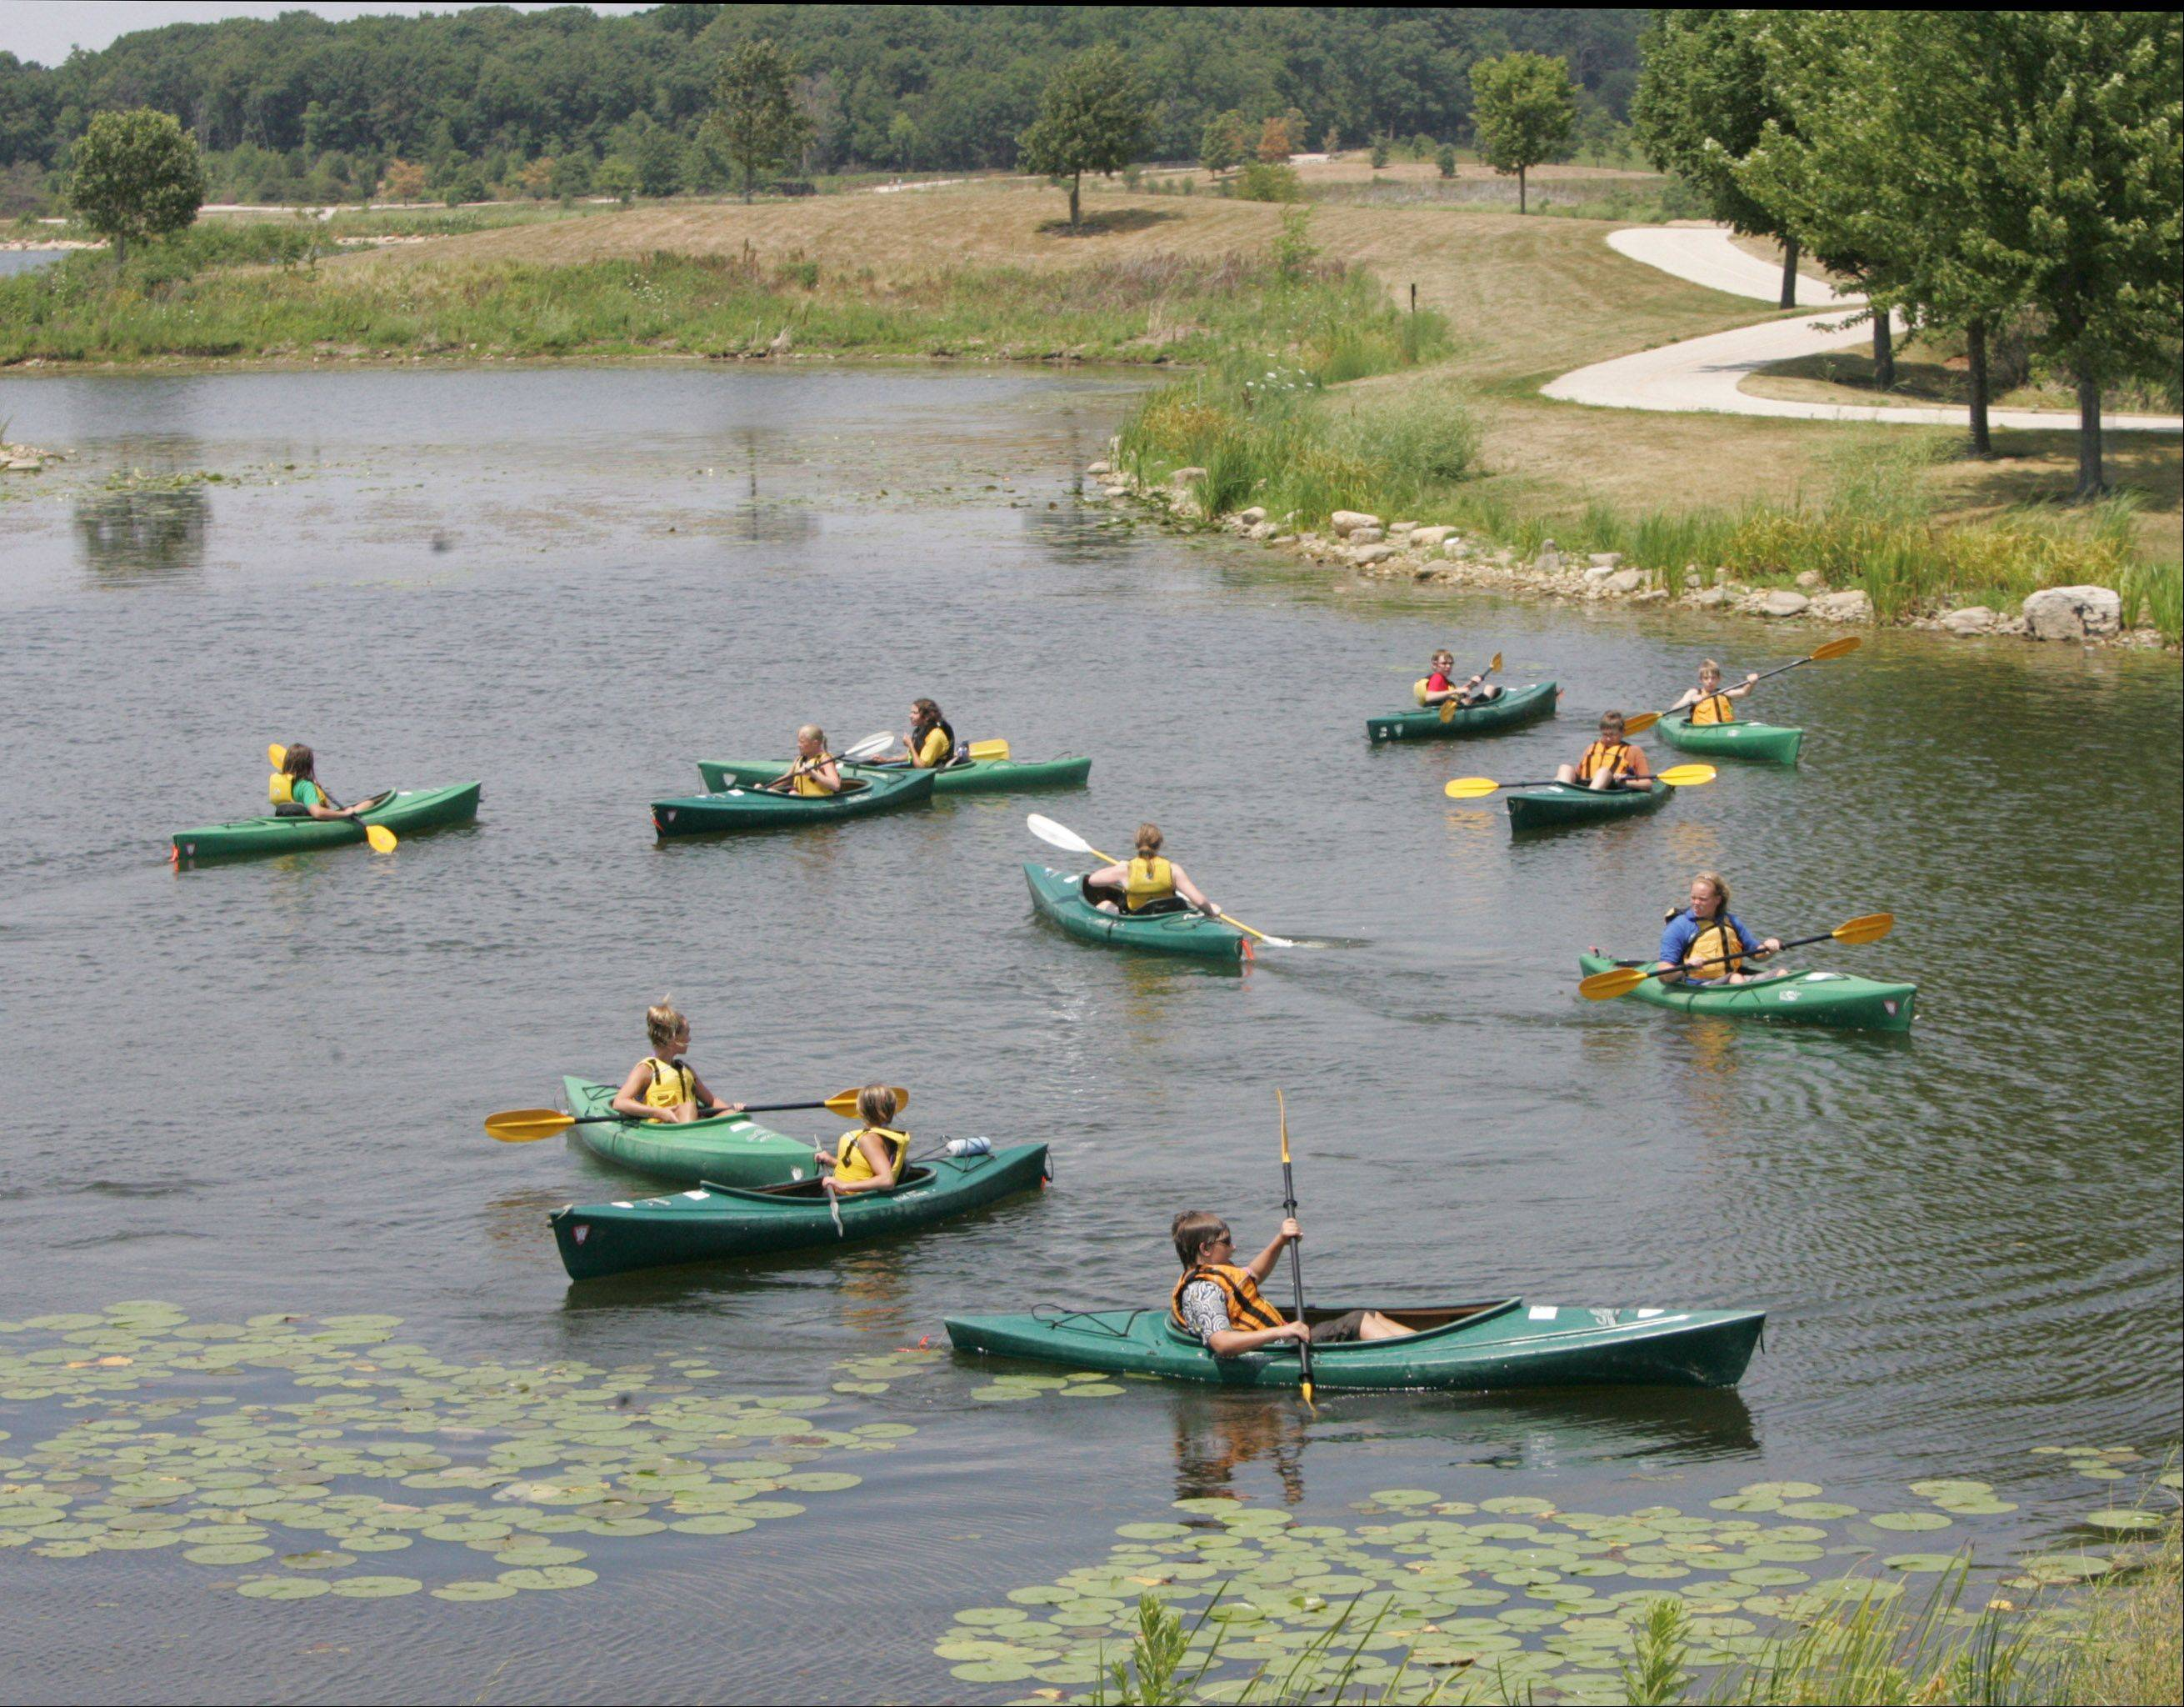 Members of the Adventures in Nature Camp kayak on a lake at Independence Grove Forest Preserve in Libertyville.